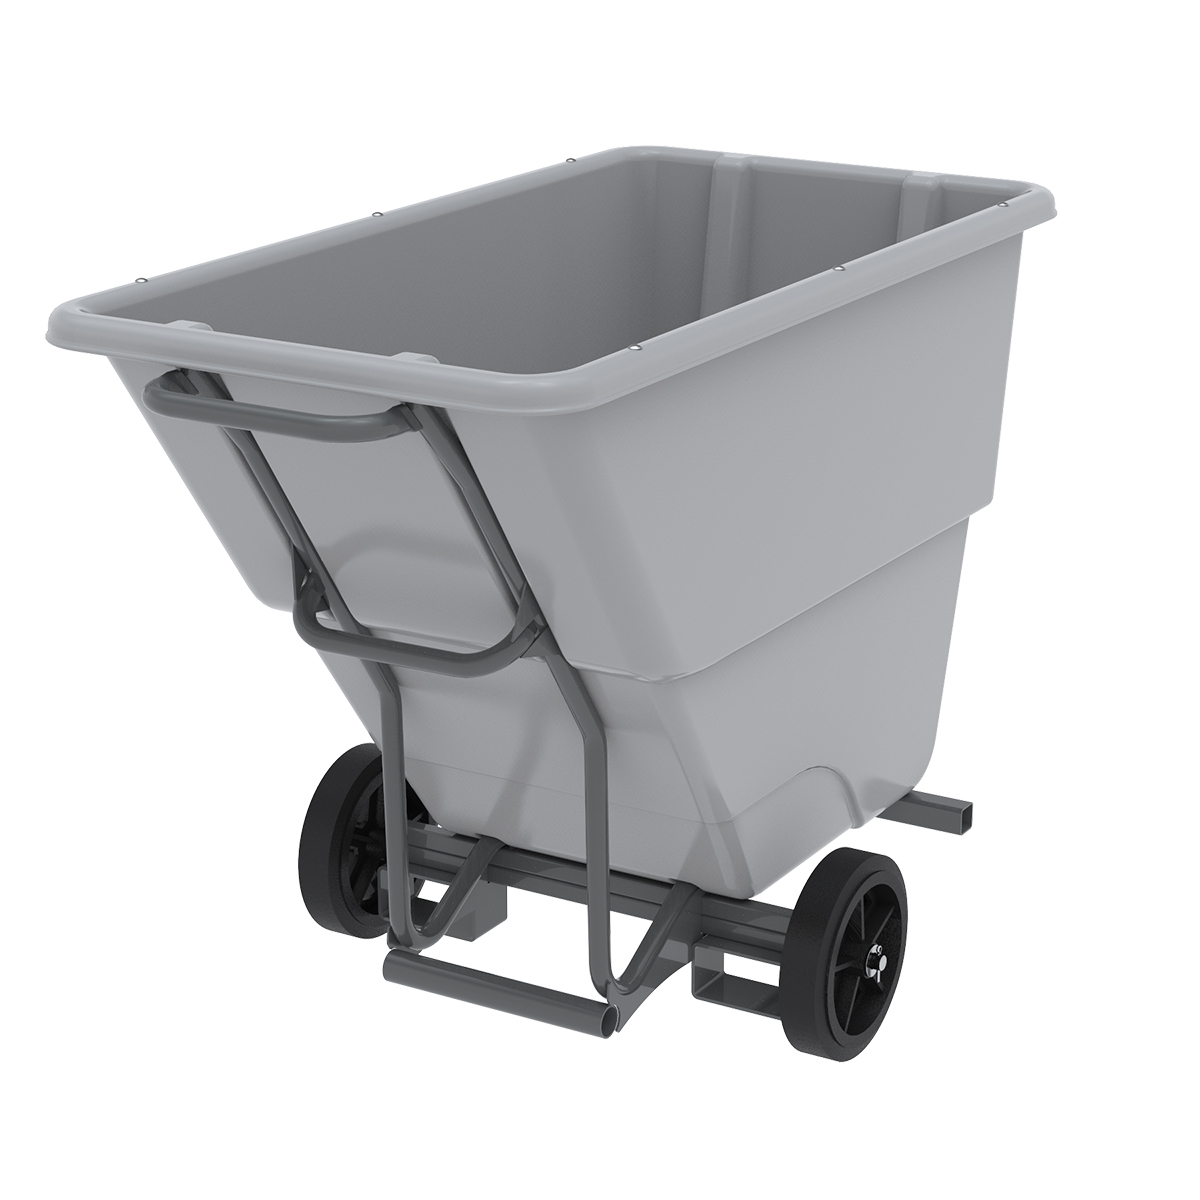 Akro-Tilt Truck w/ Fork Channels Heavy-Duty 100 Gal, 27 x 54 x 36, Gray (77505FGREY).  This item sold in carton quantities of 1.